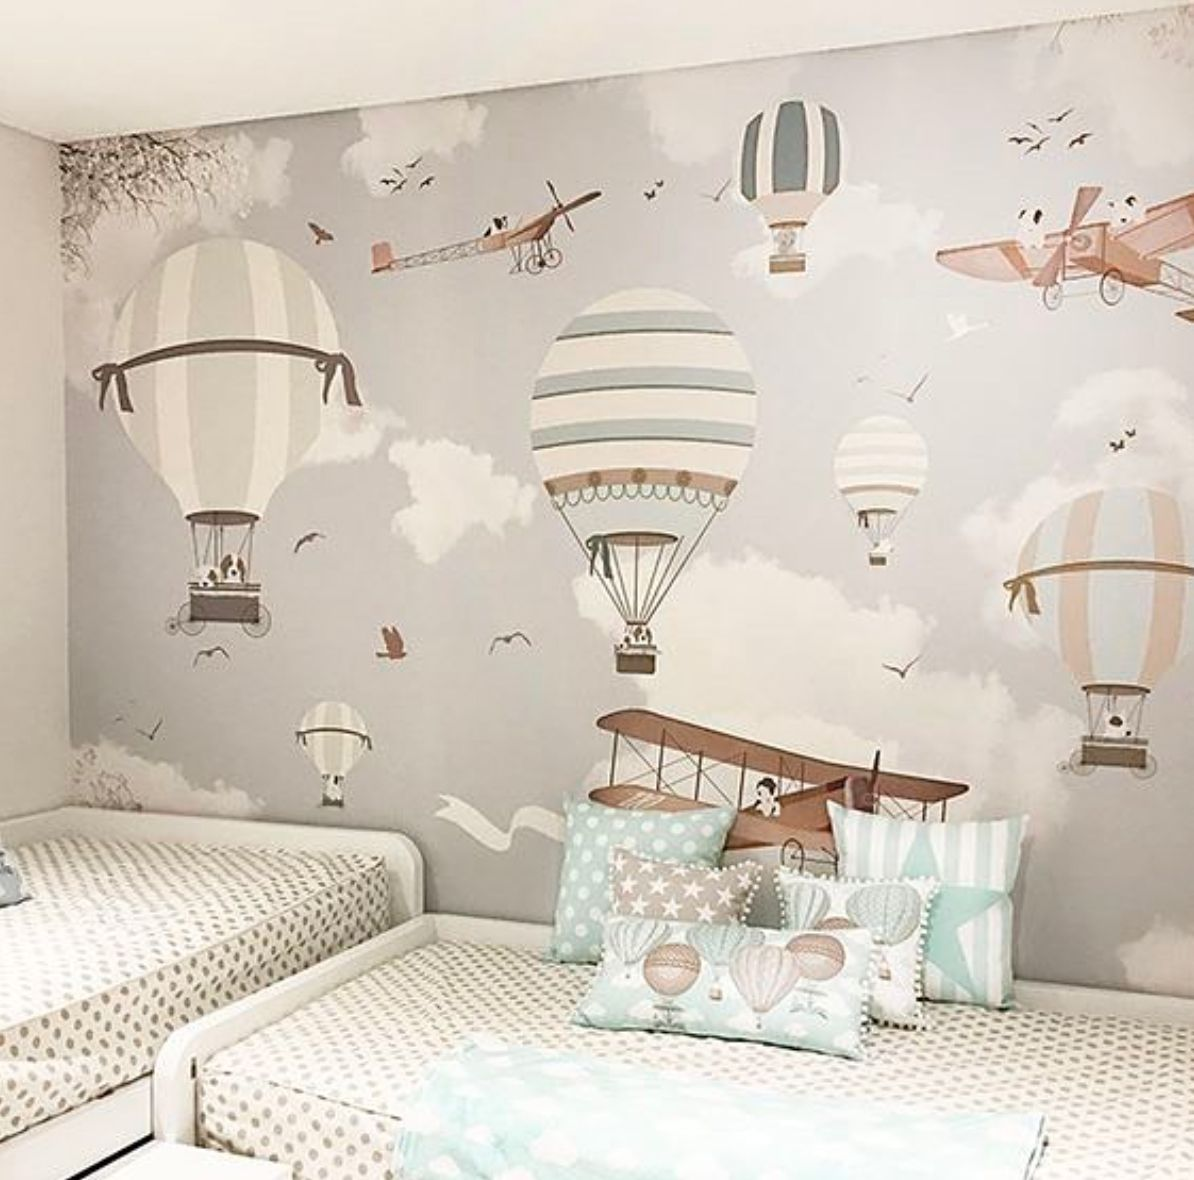 Baby Room Wallpaper – Selecting the Right One For Your Child's Nursery